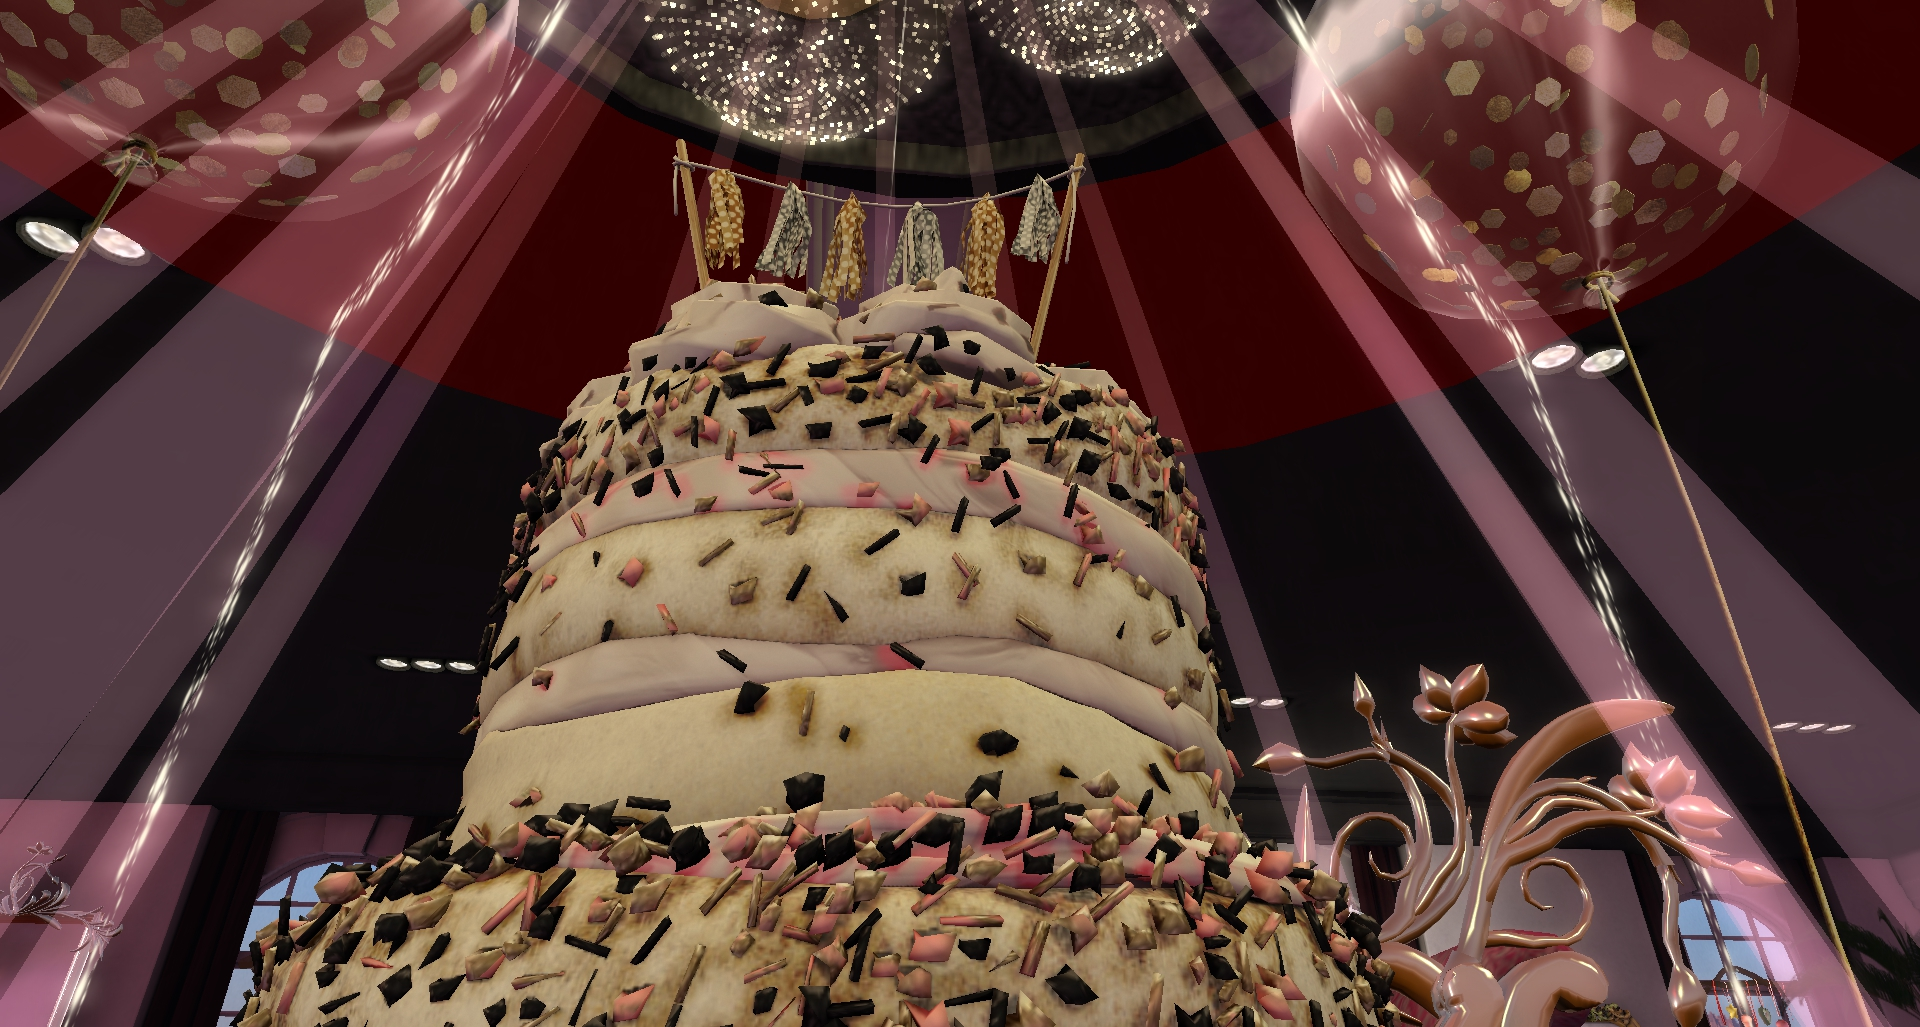 Patisserie internal cake closeup Jan 2019_001.jpg